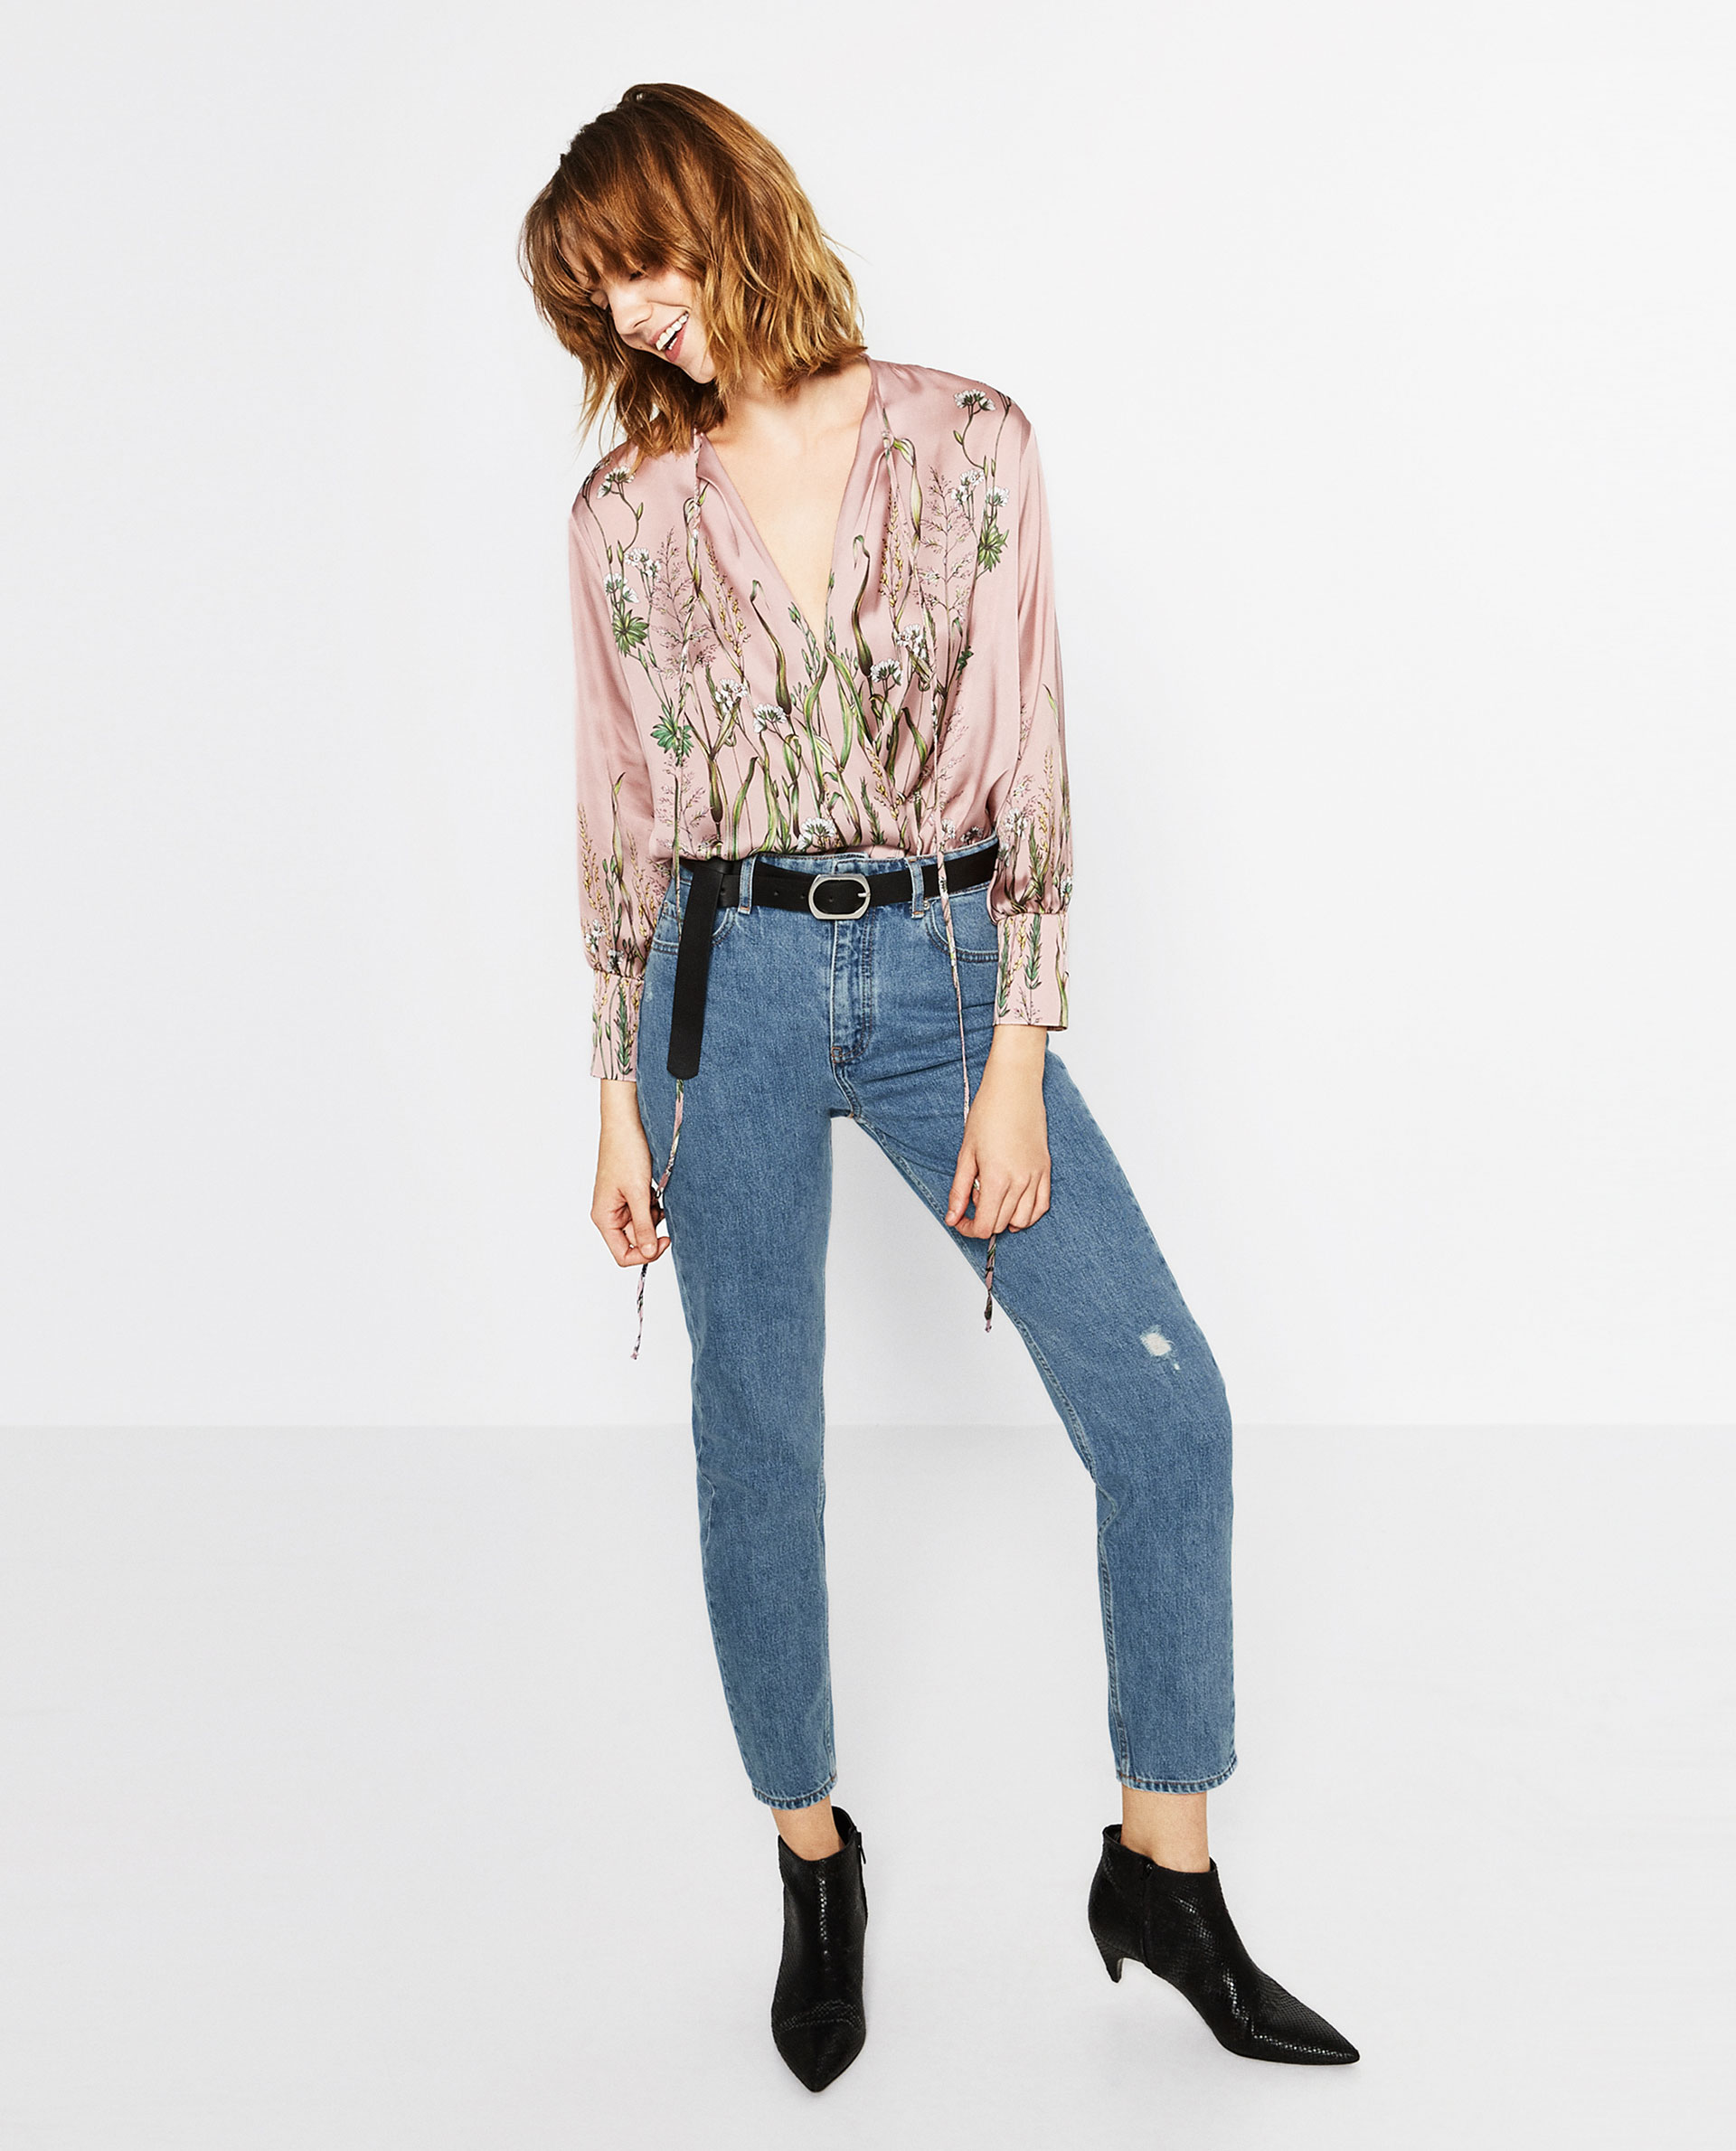 zara, body, skinny jeans, printed top,